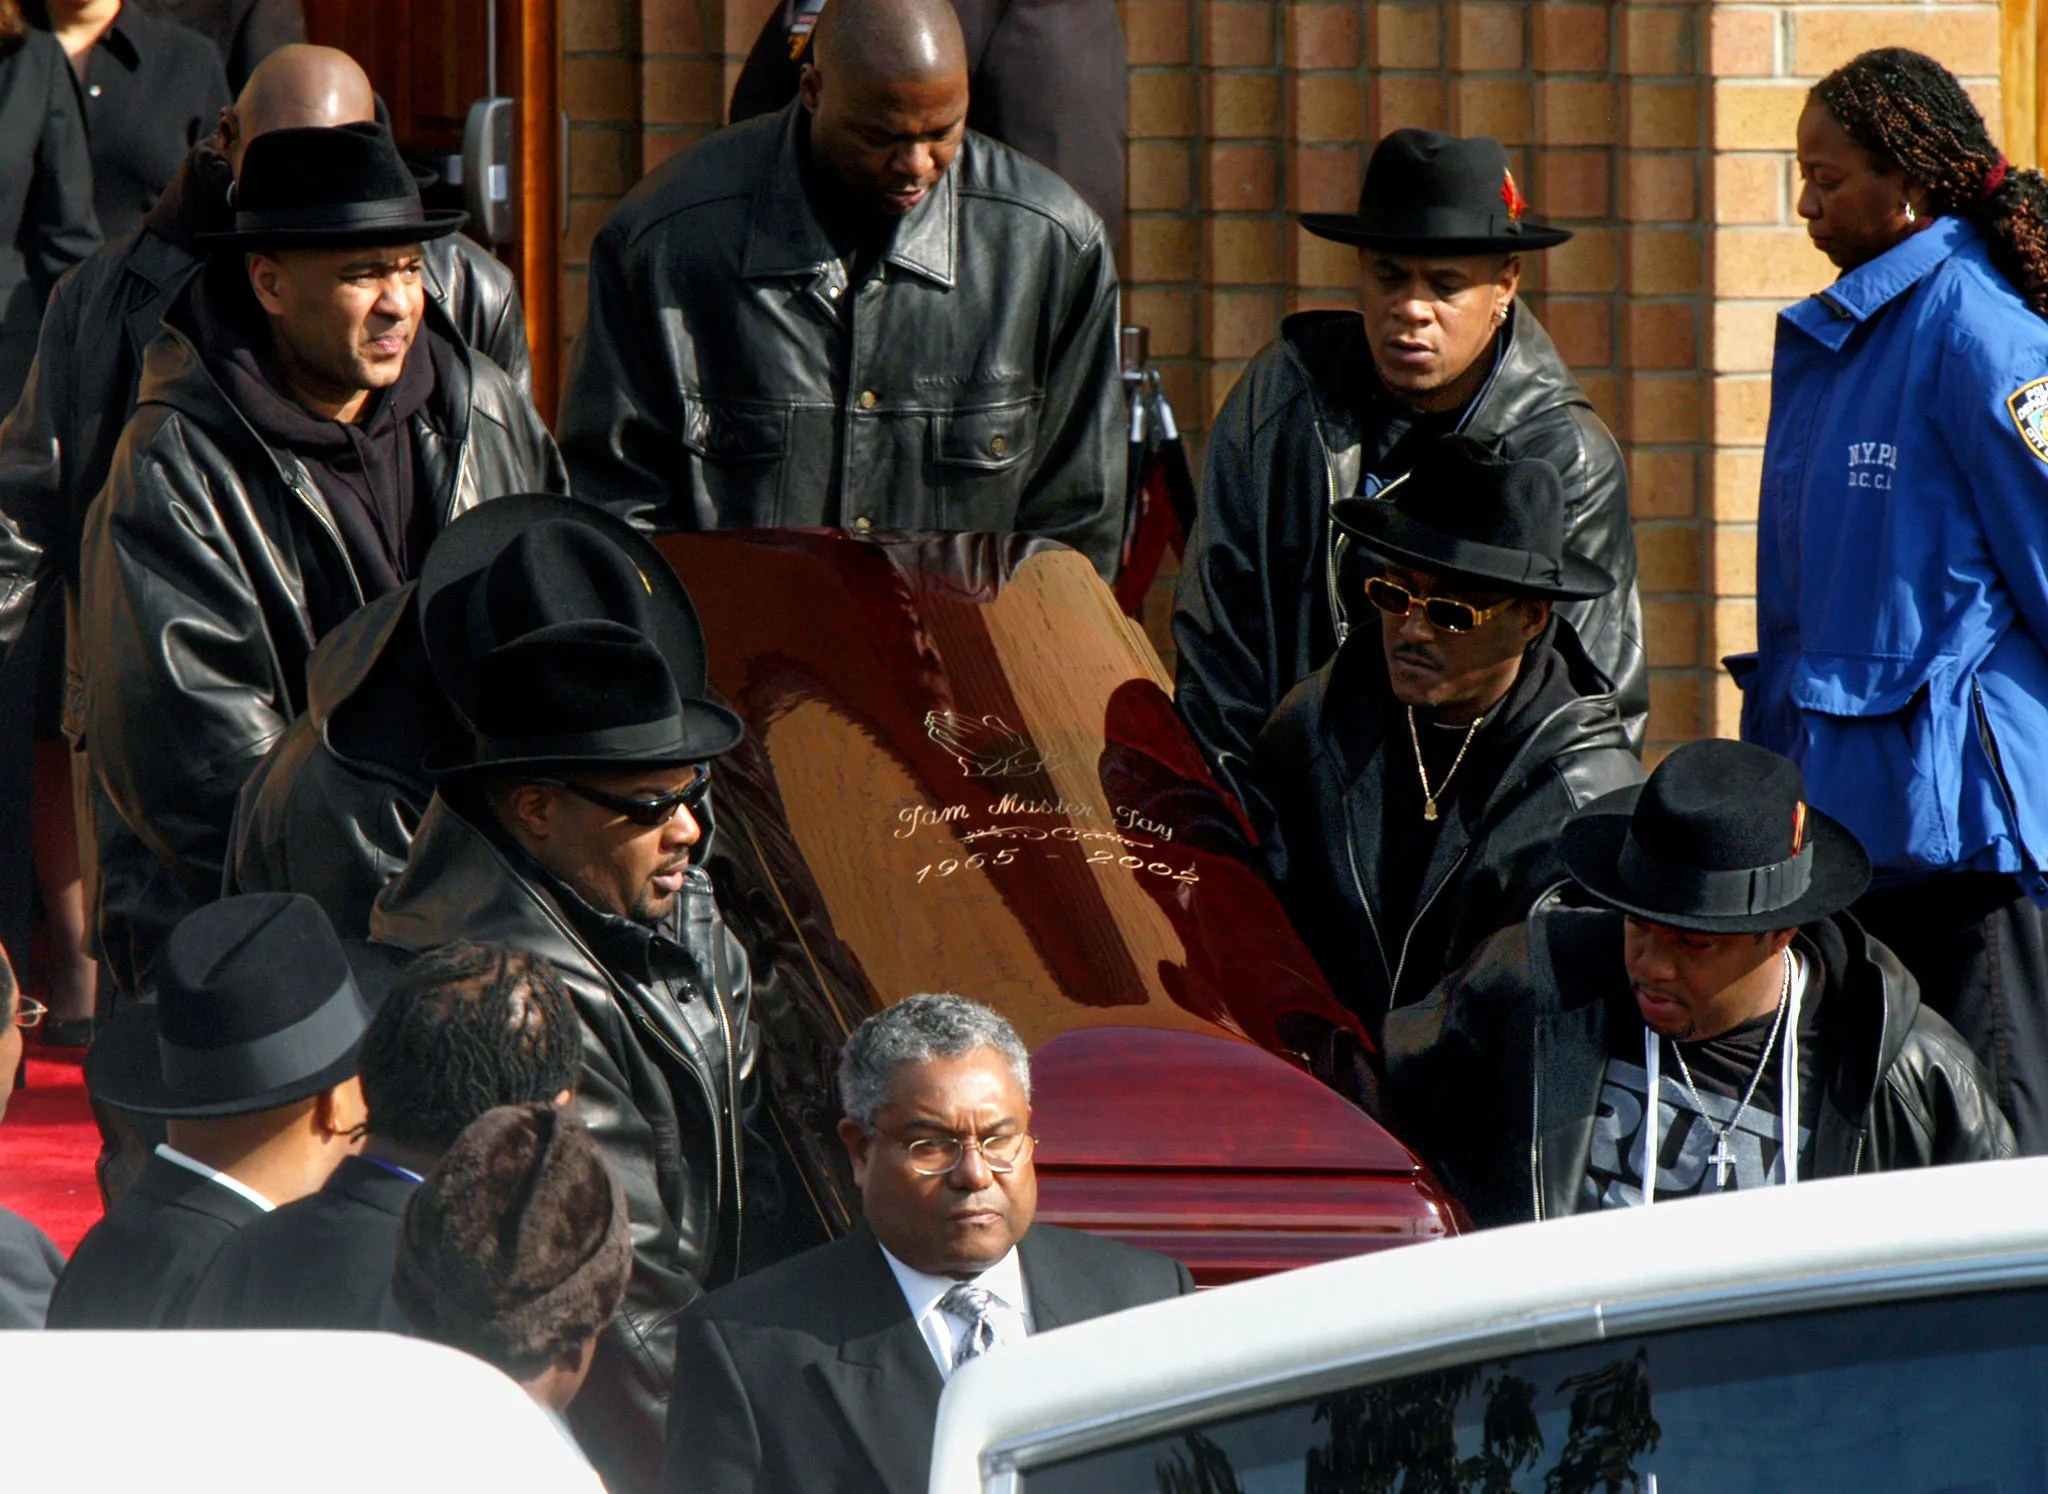 "Jason ""Jam Master Jay"" Mizell's coffin is carried out after his funeral on Nov. 5, 2002."